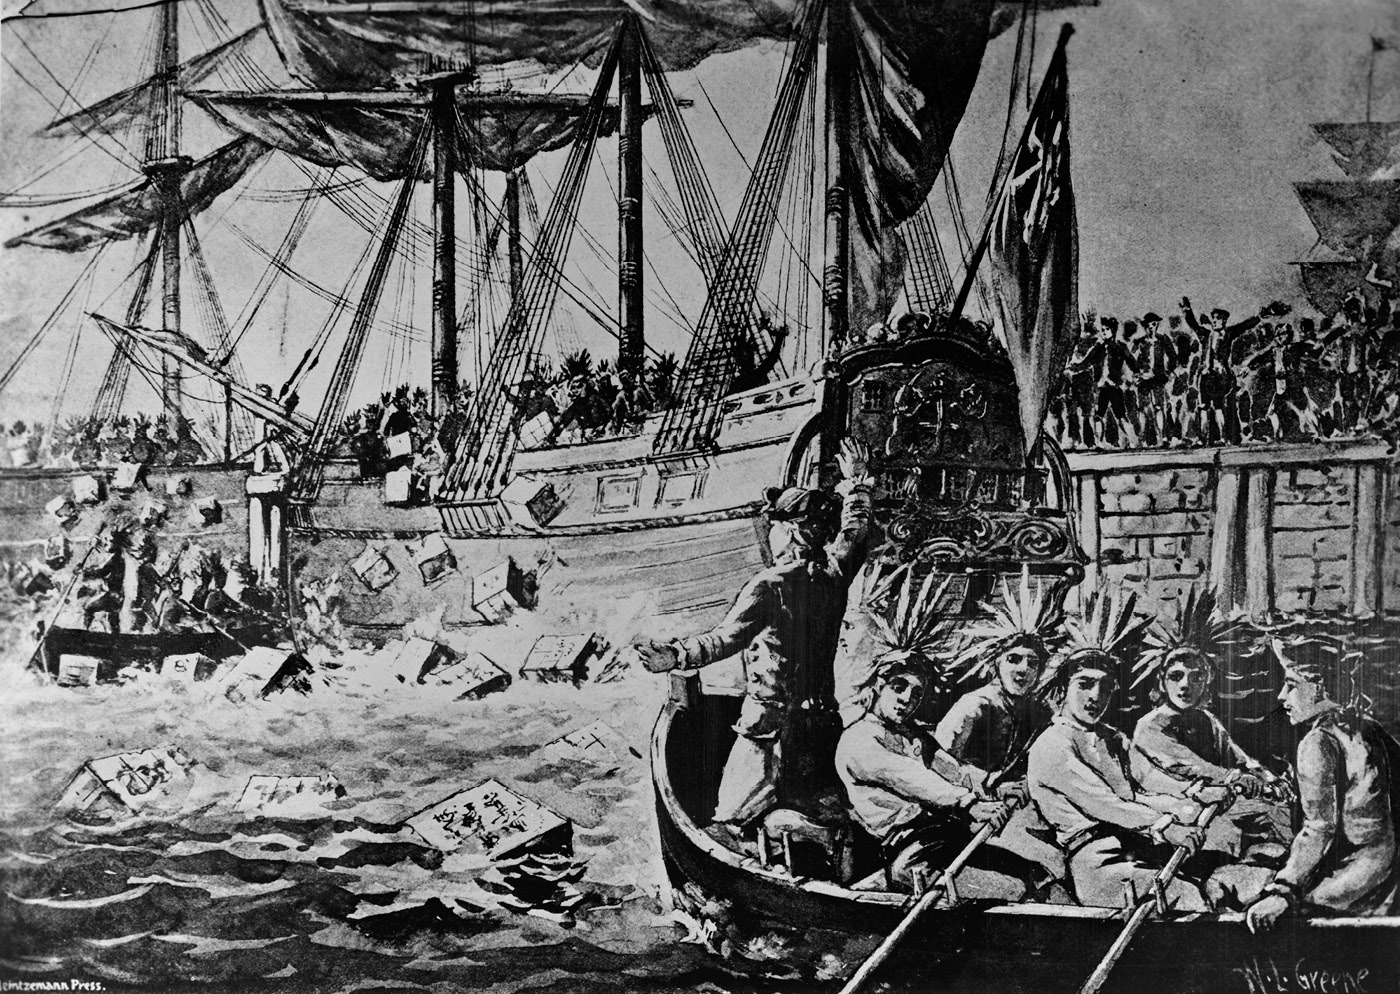 Only ships owned by the East India Company could carry tea.